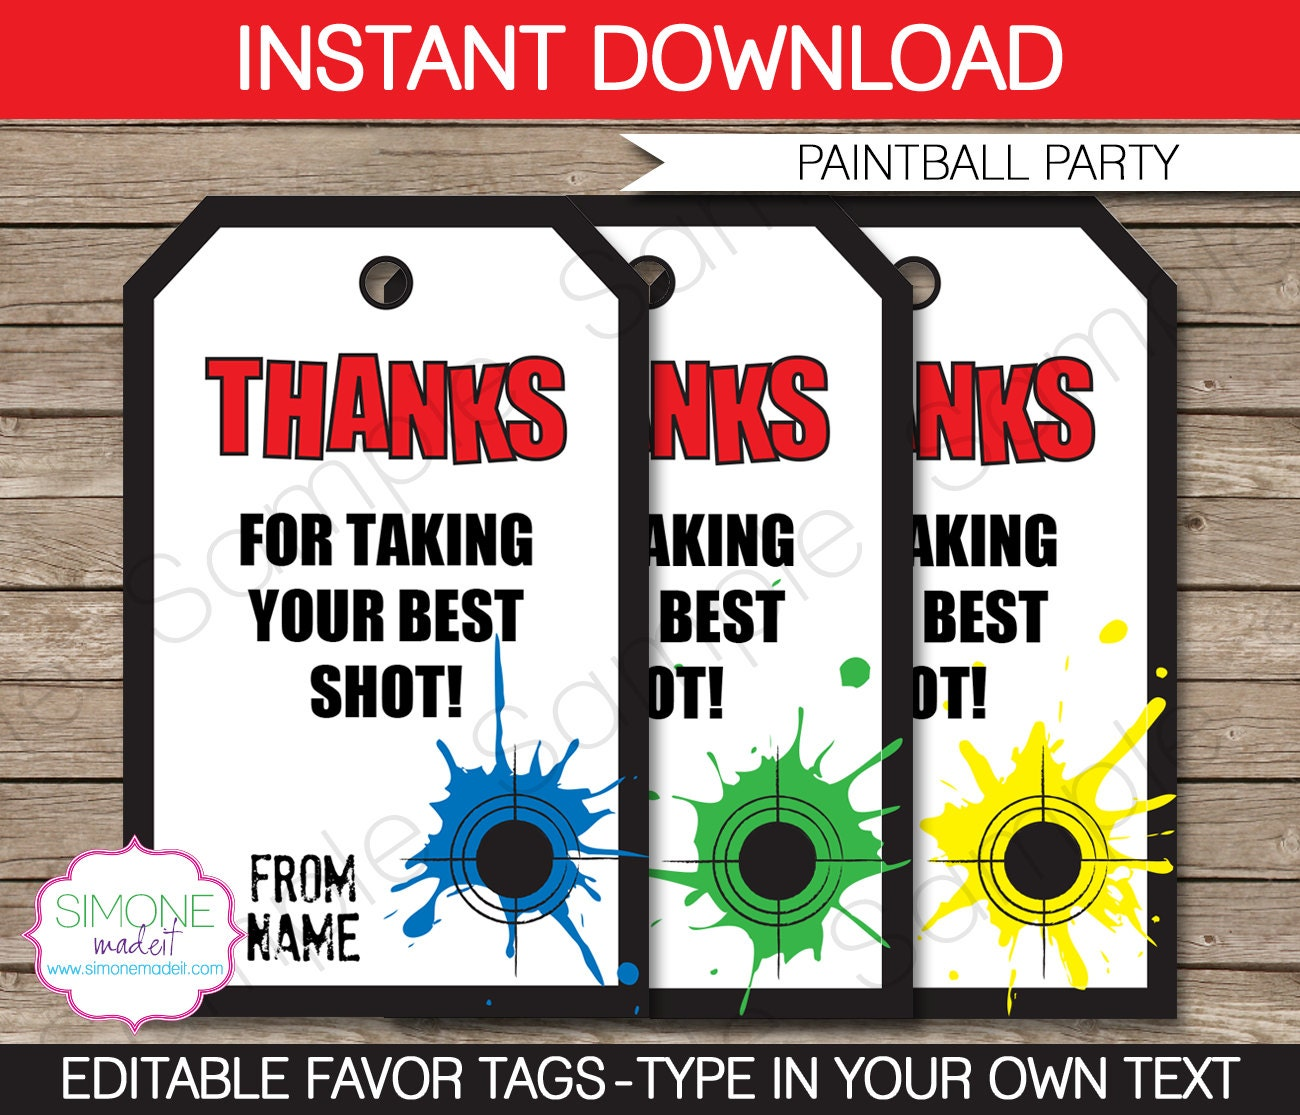 Paintball Party Invitations & Decorations full Printable